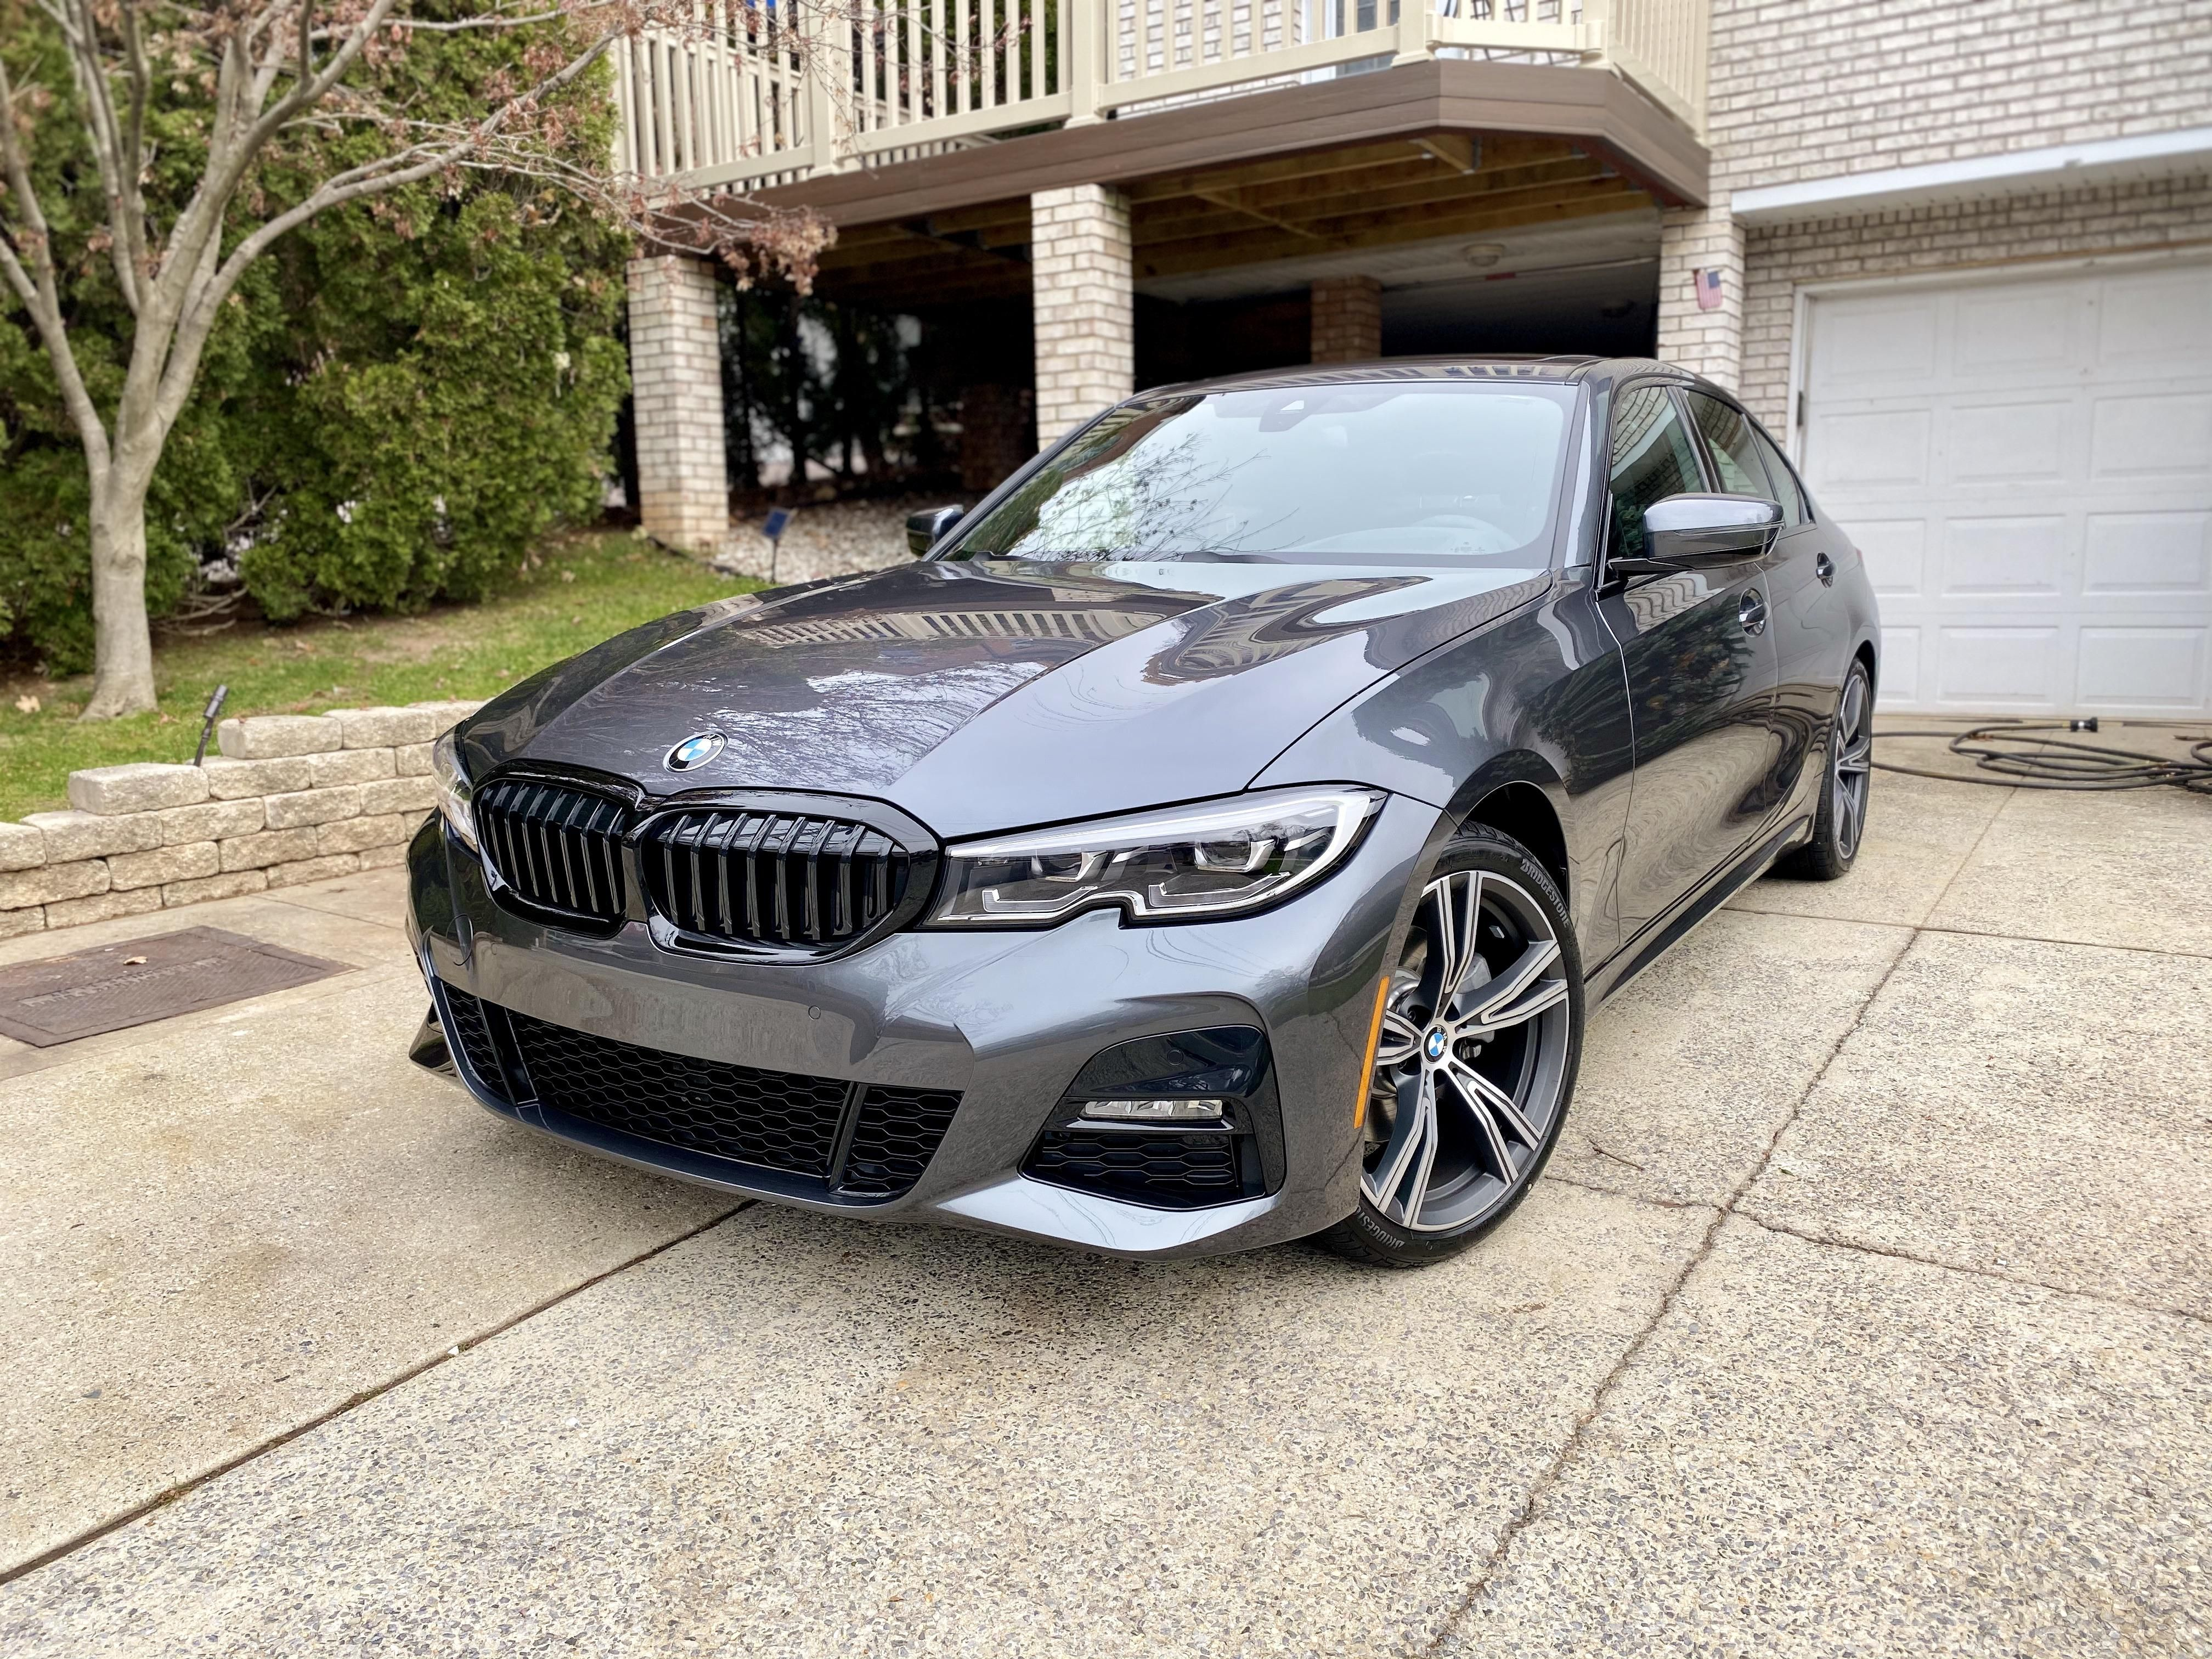 First Bmw And Im In Love 2020 330xi M Sport In Mineral Gray Bmw Bmw Love Bmw Price